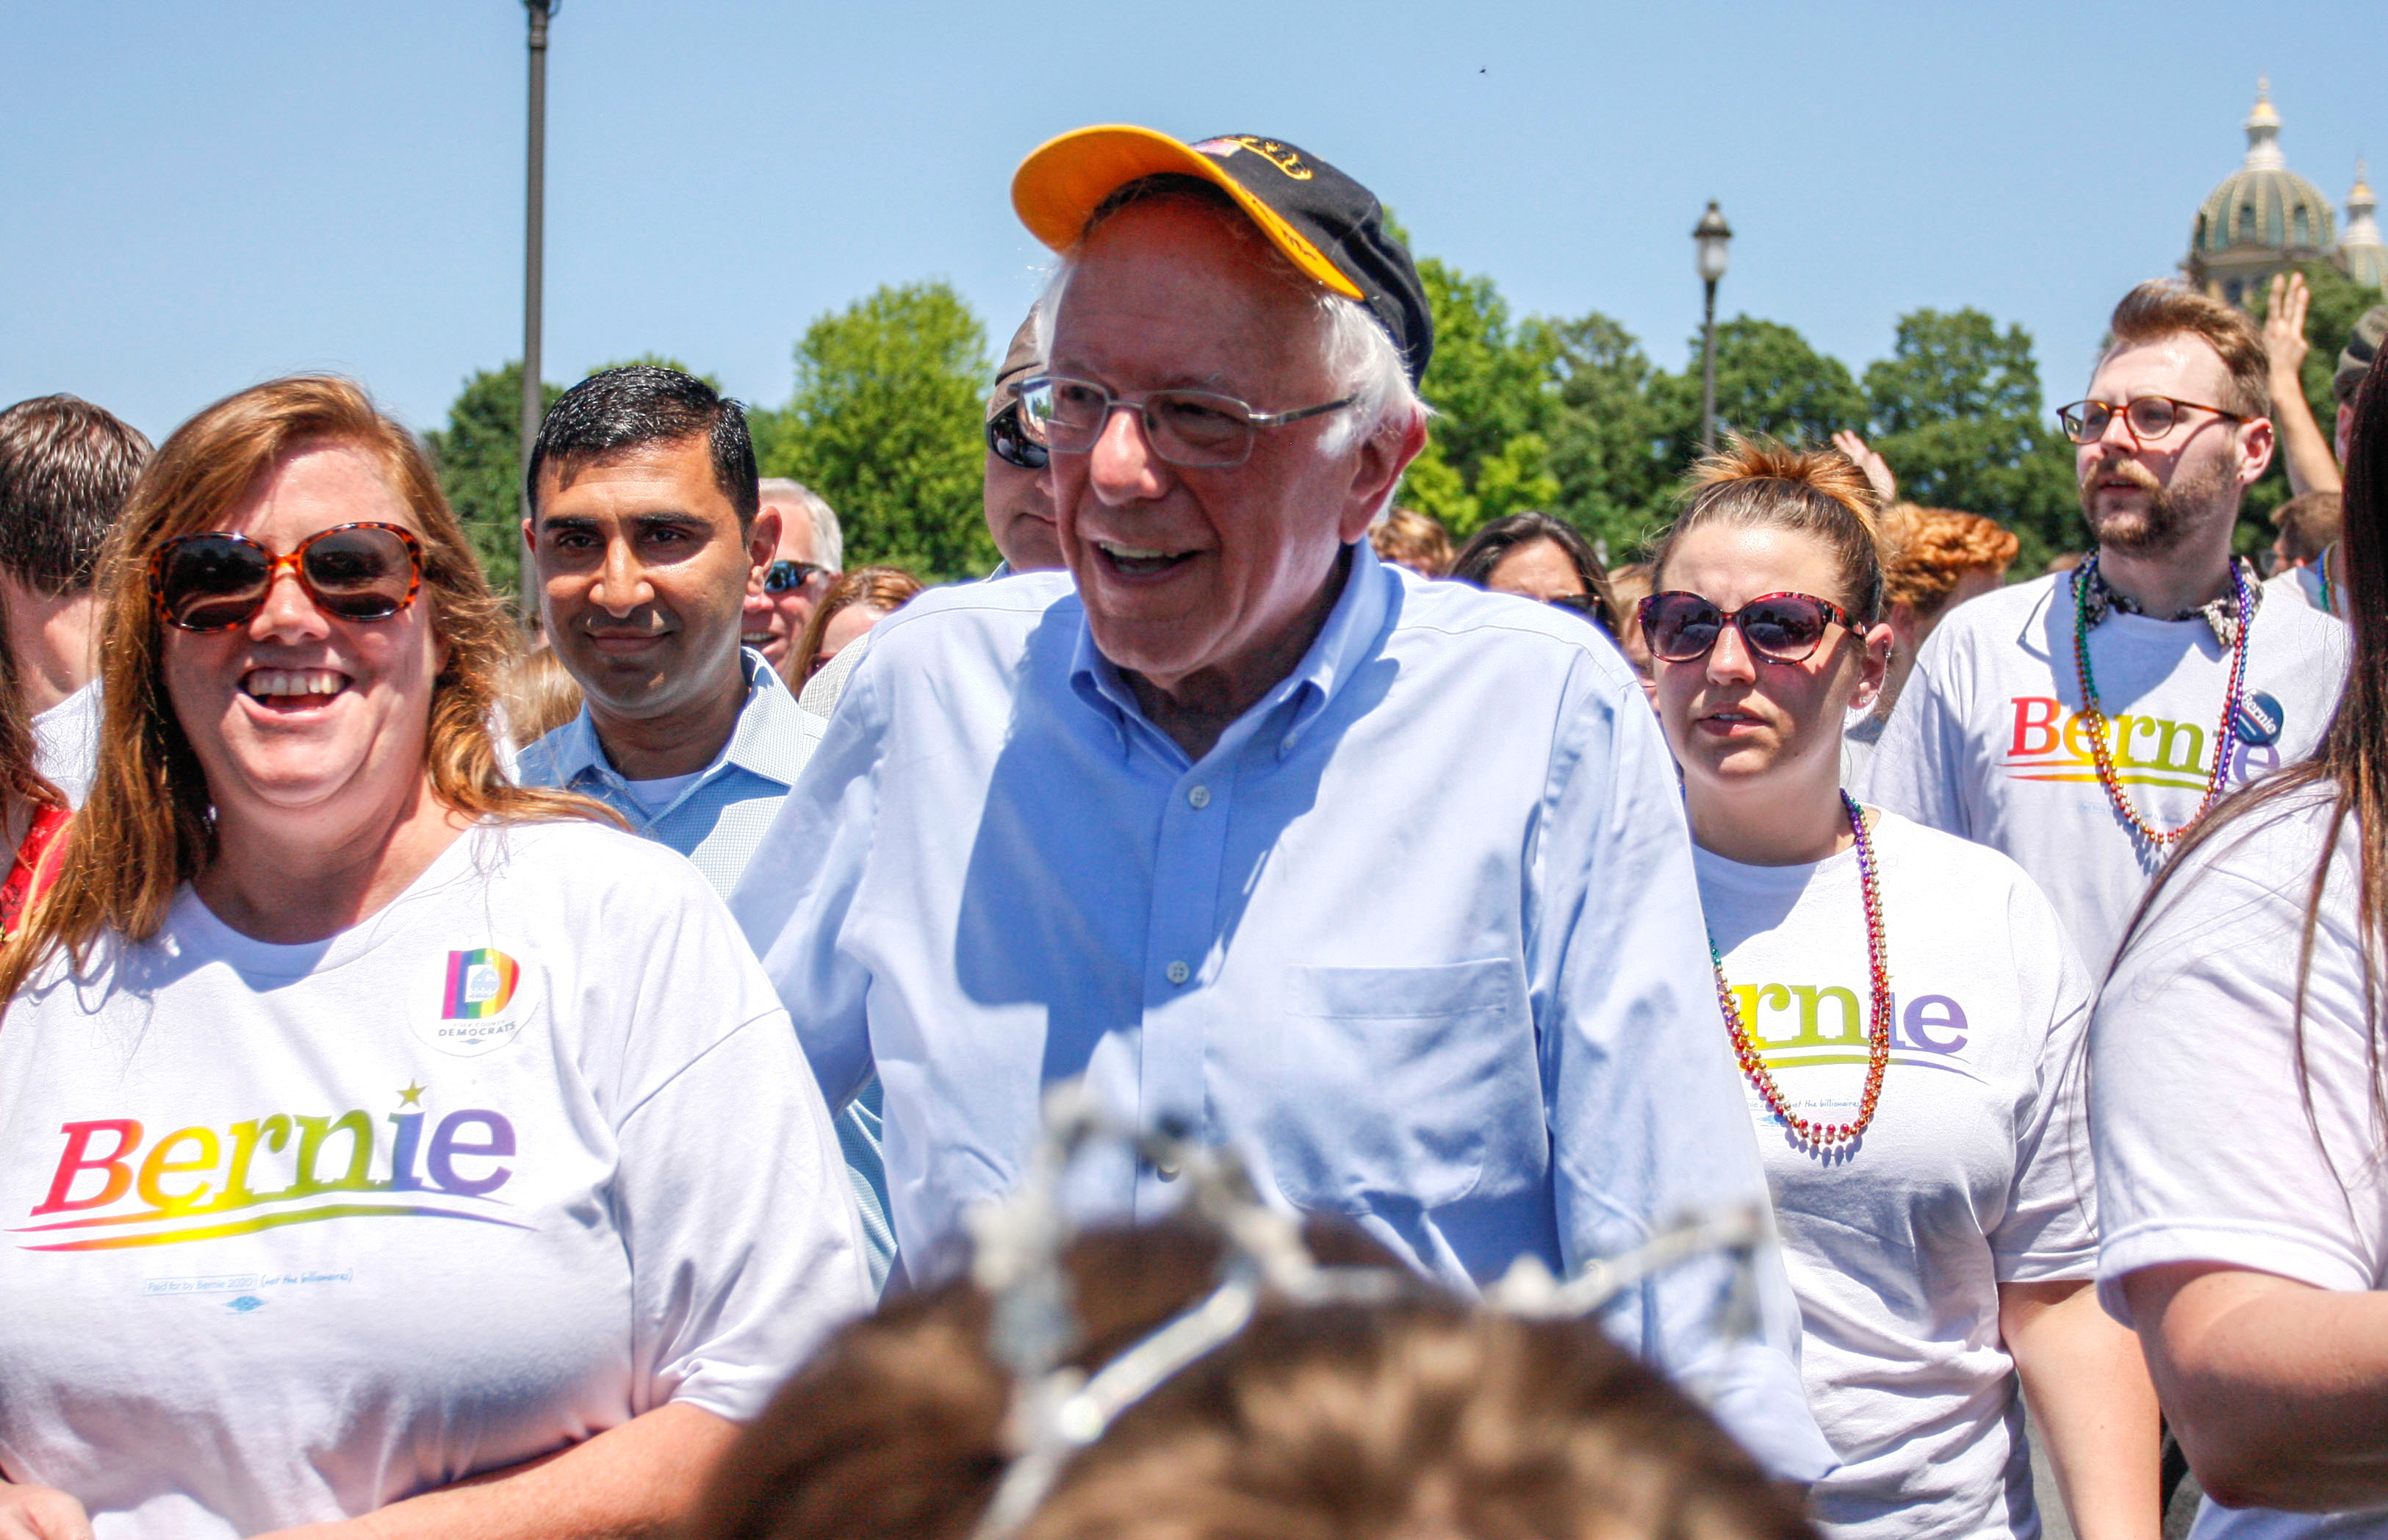 Democratic 2020 U.S. presidential candidate Senator Bernie Sanders walks with supporters as he campaigns at the Capital Pride LGBTQ gay pride celebration at the Iowa State Capitol in Des Moines, Iowa, June 8, 2019.